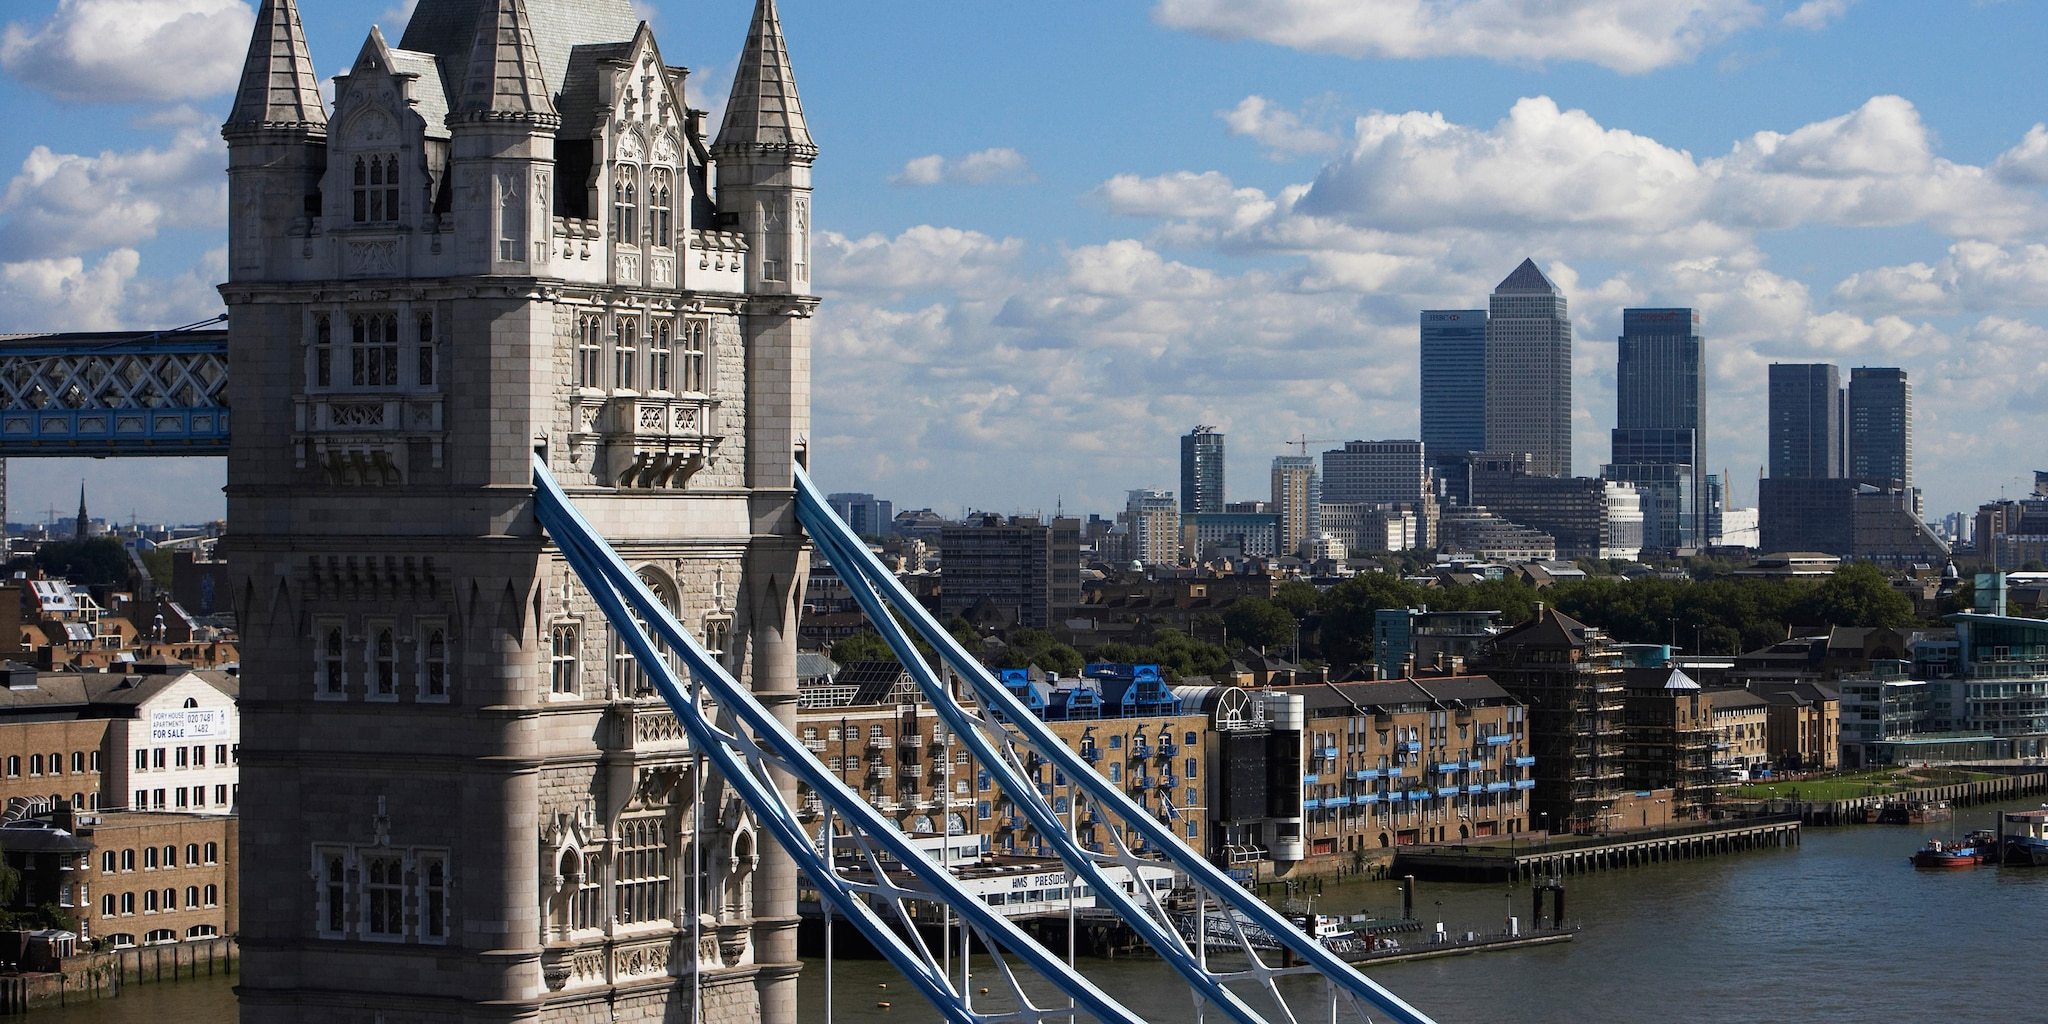 The top of the Tower Bridge overlooking London and the River Thames